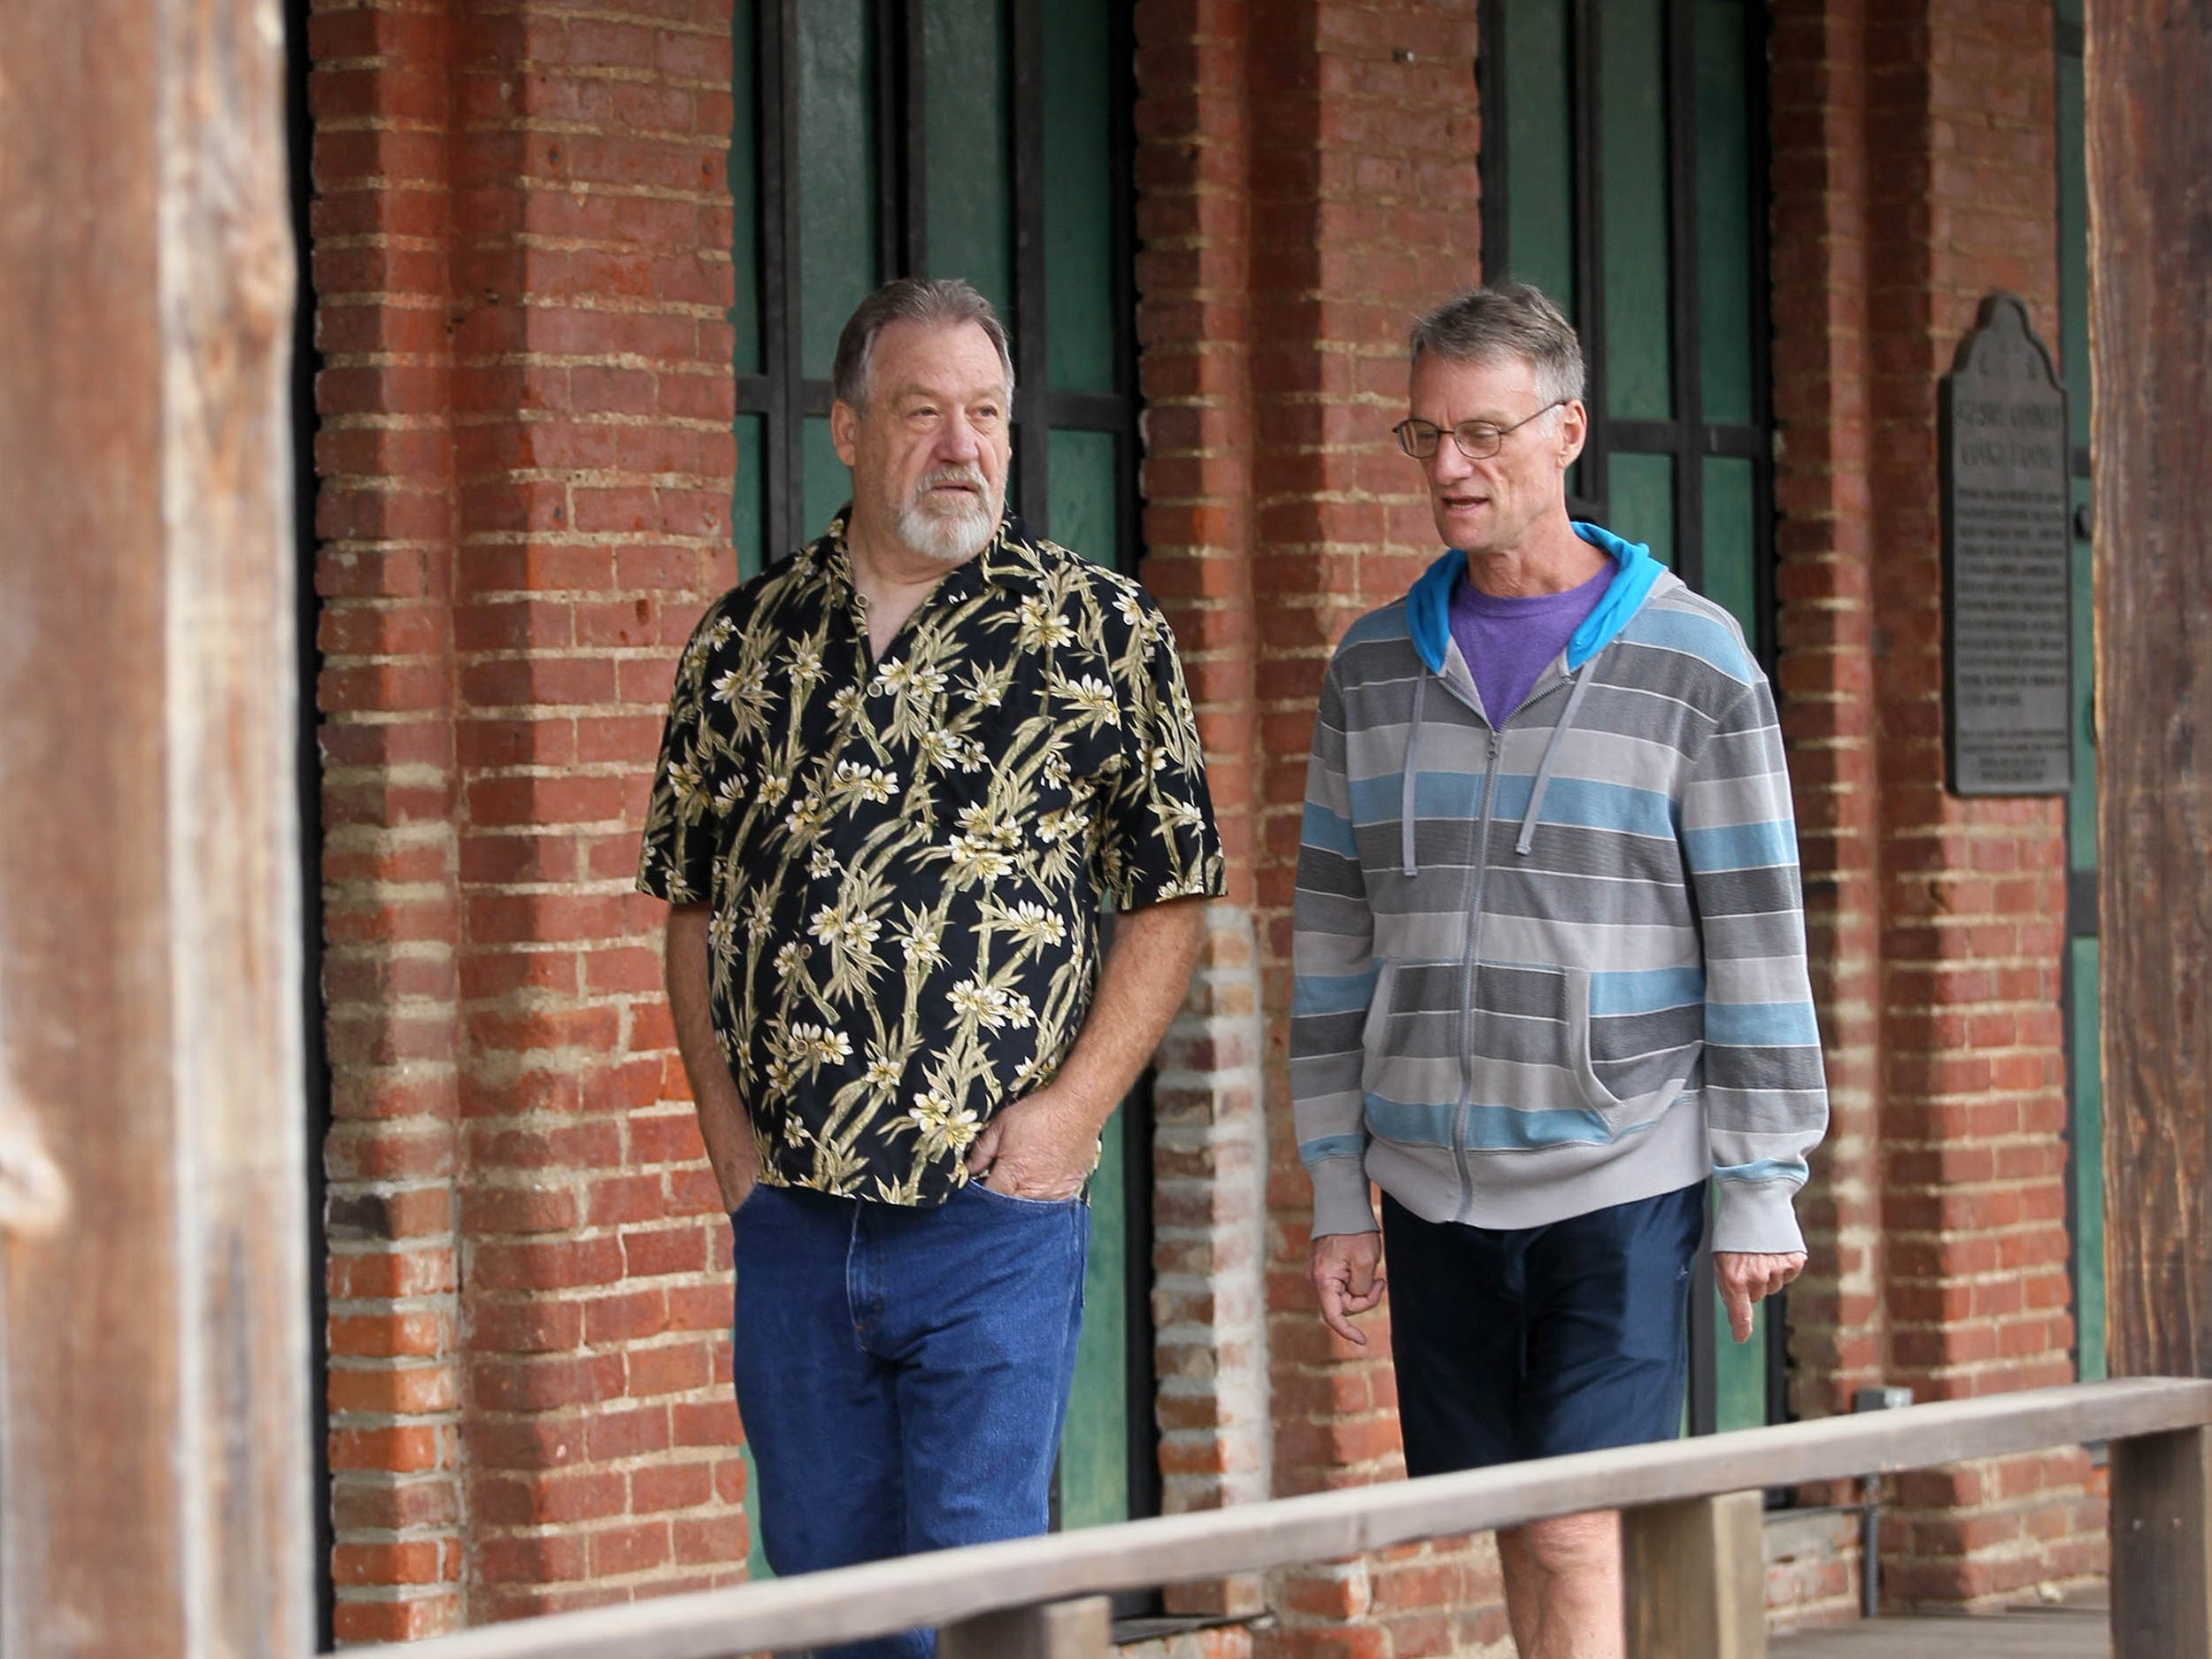 Tom Hinton, left, and Brad Hart, walk under the porch of the Shasta museum as they reflect on the time they organized one of the first drag queen shows in the Redding area in 1989. (Hung T. Vu/Special to the Record Searchlight)